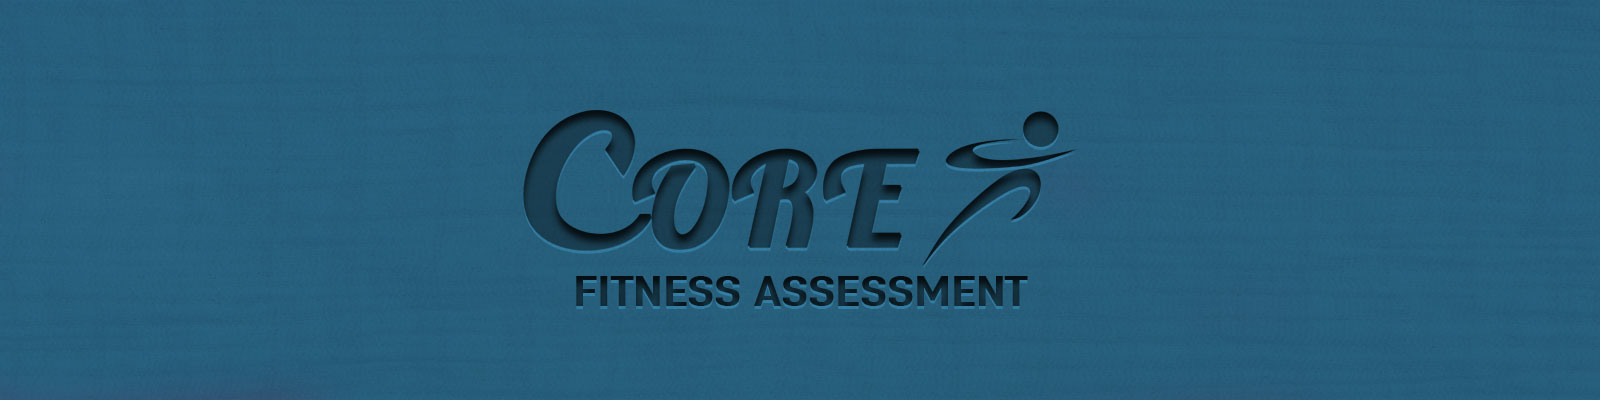 Core Health & Fitness - Gym Durrow Co. Laois